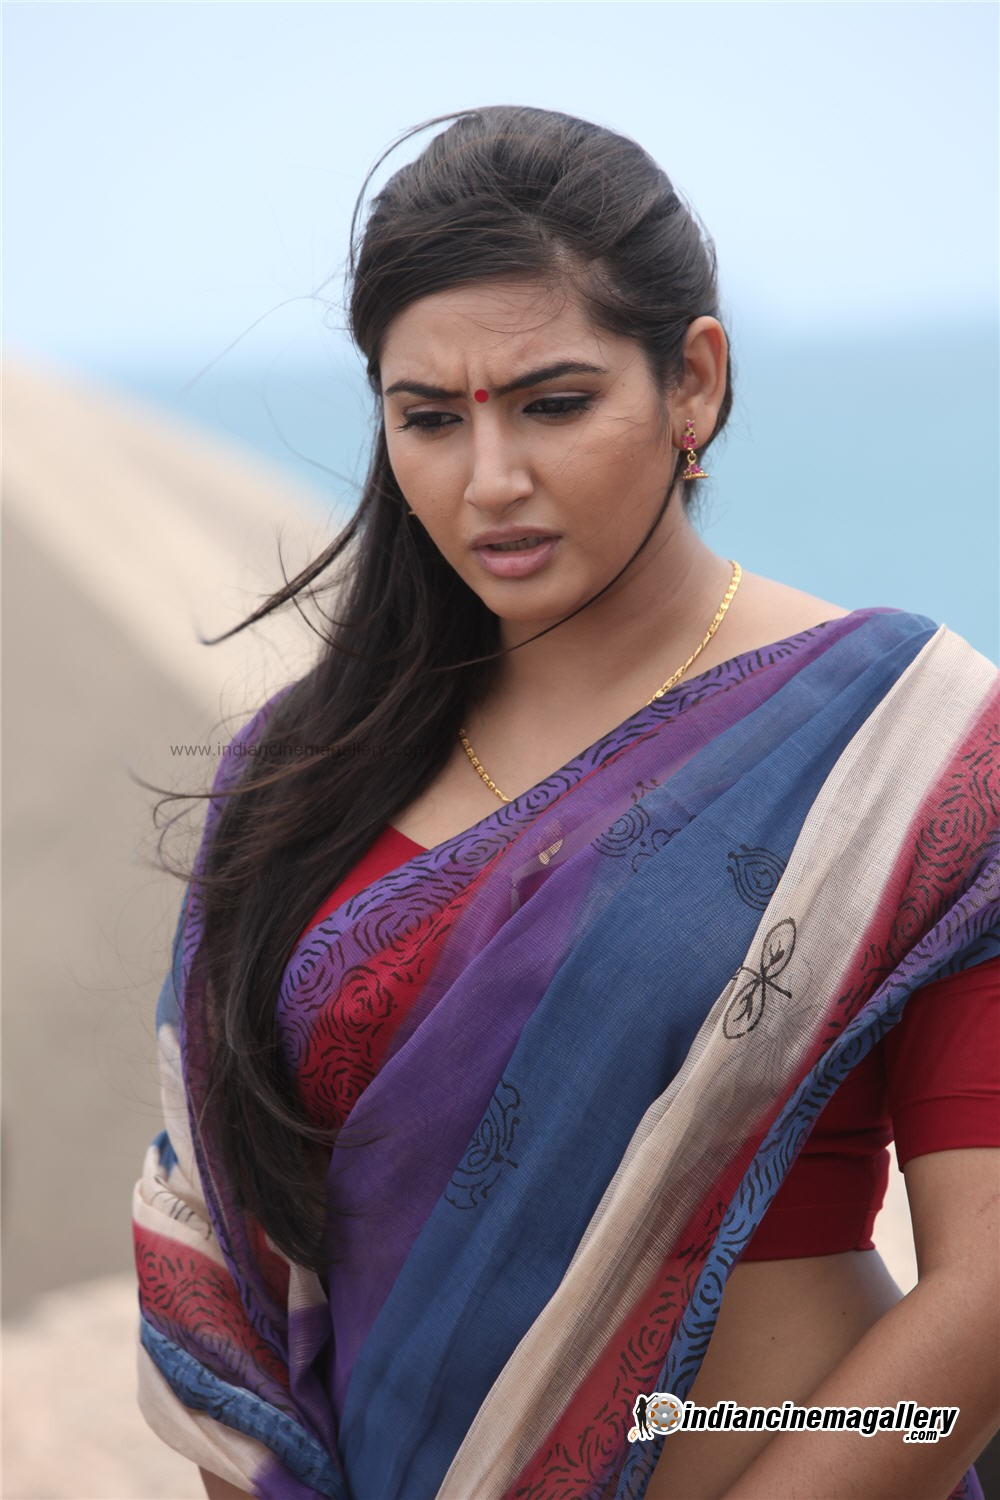 28 | Ragini Dwivedi – Indian Cinema Gallery